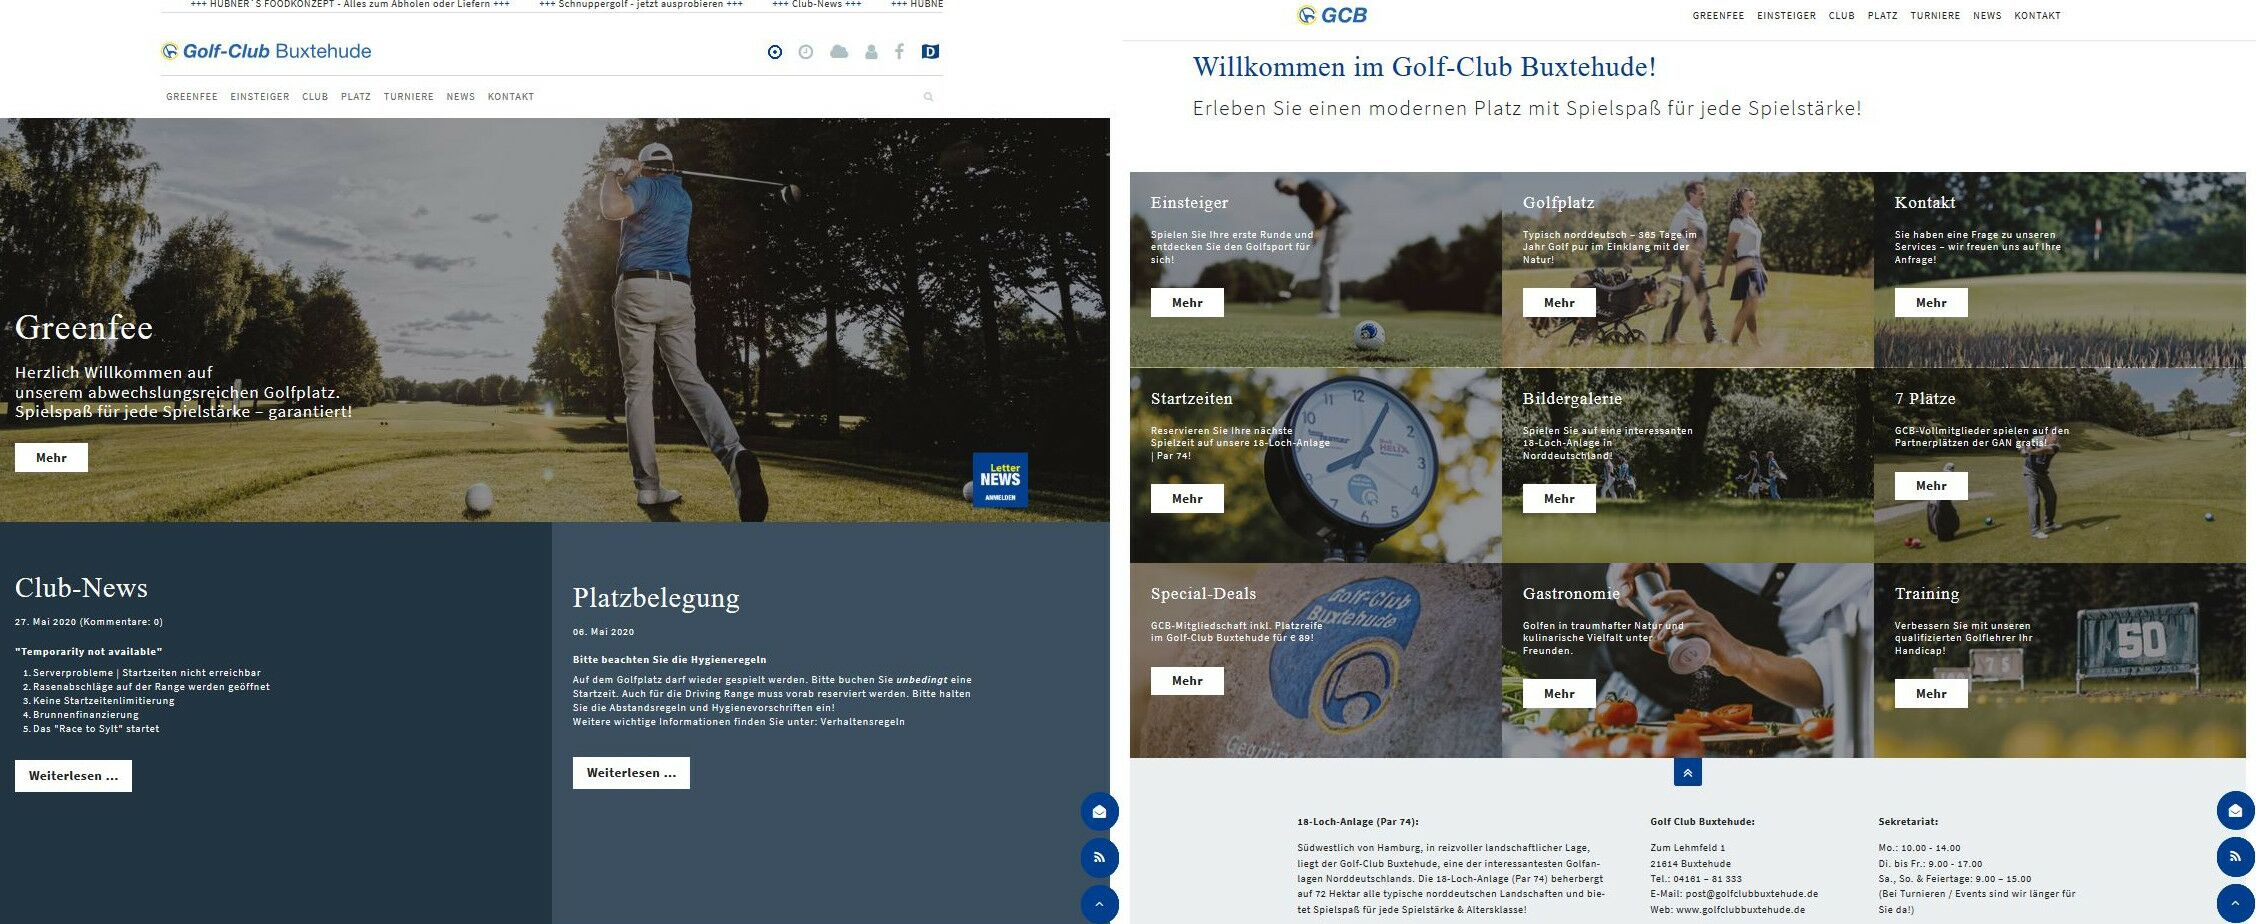 Golf-Club Buxtehude: Website-Upgrade